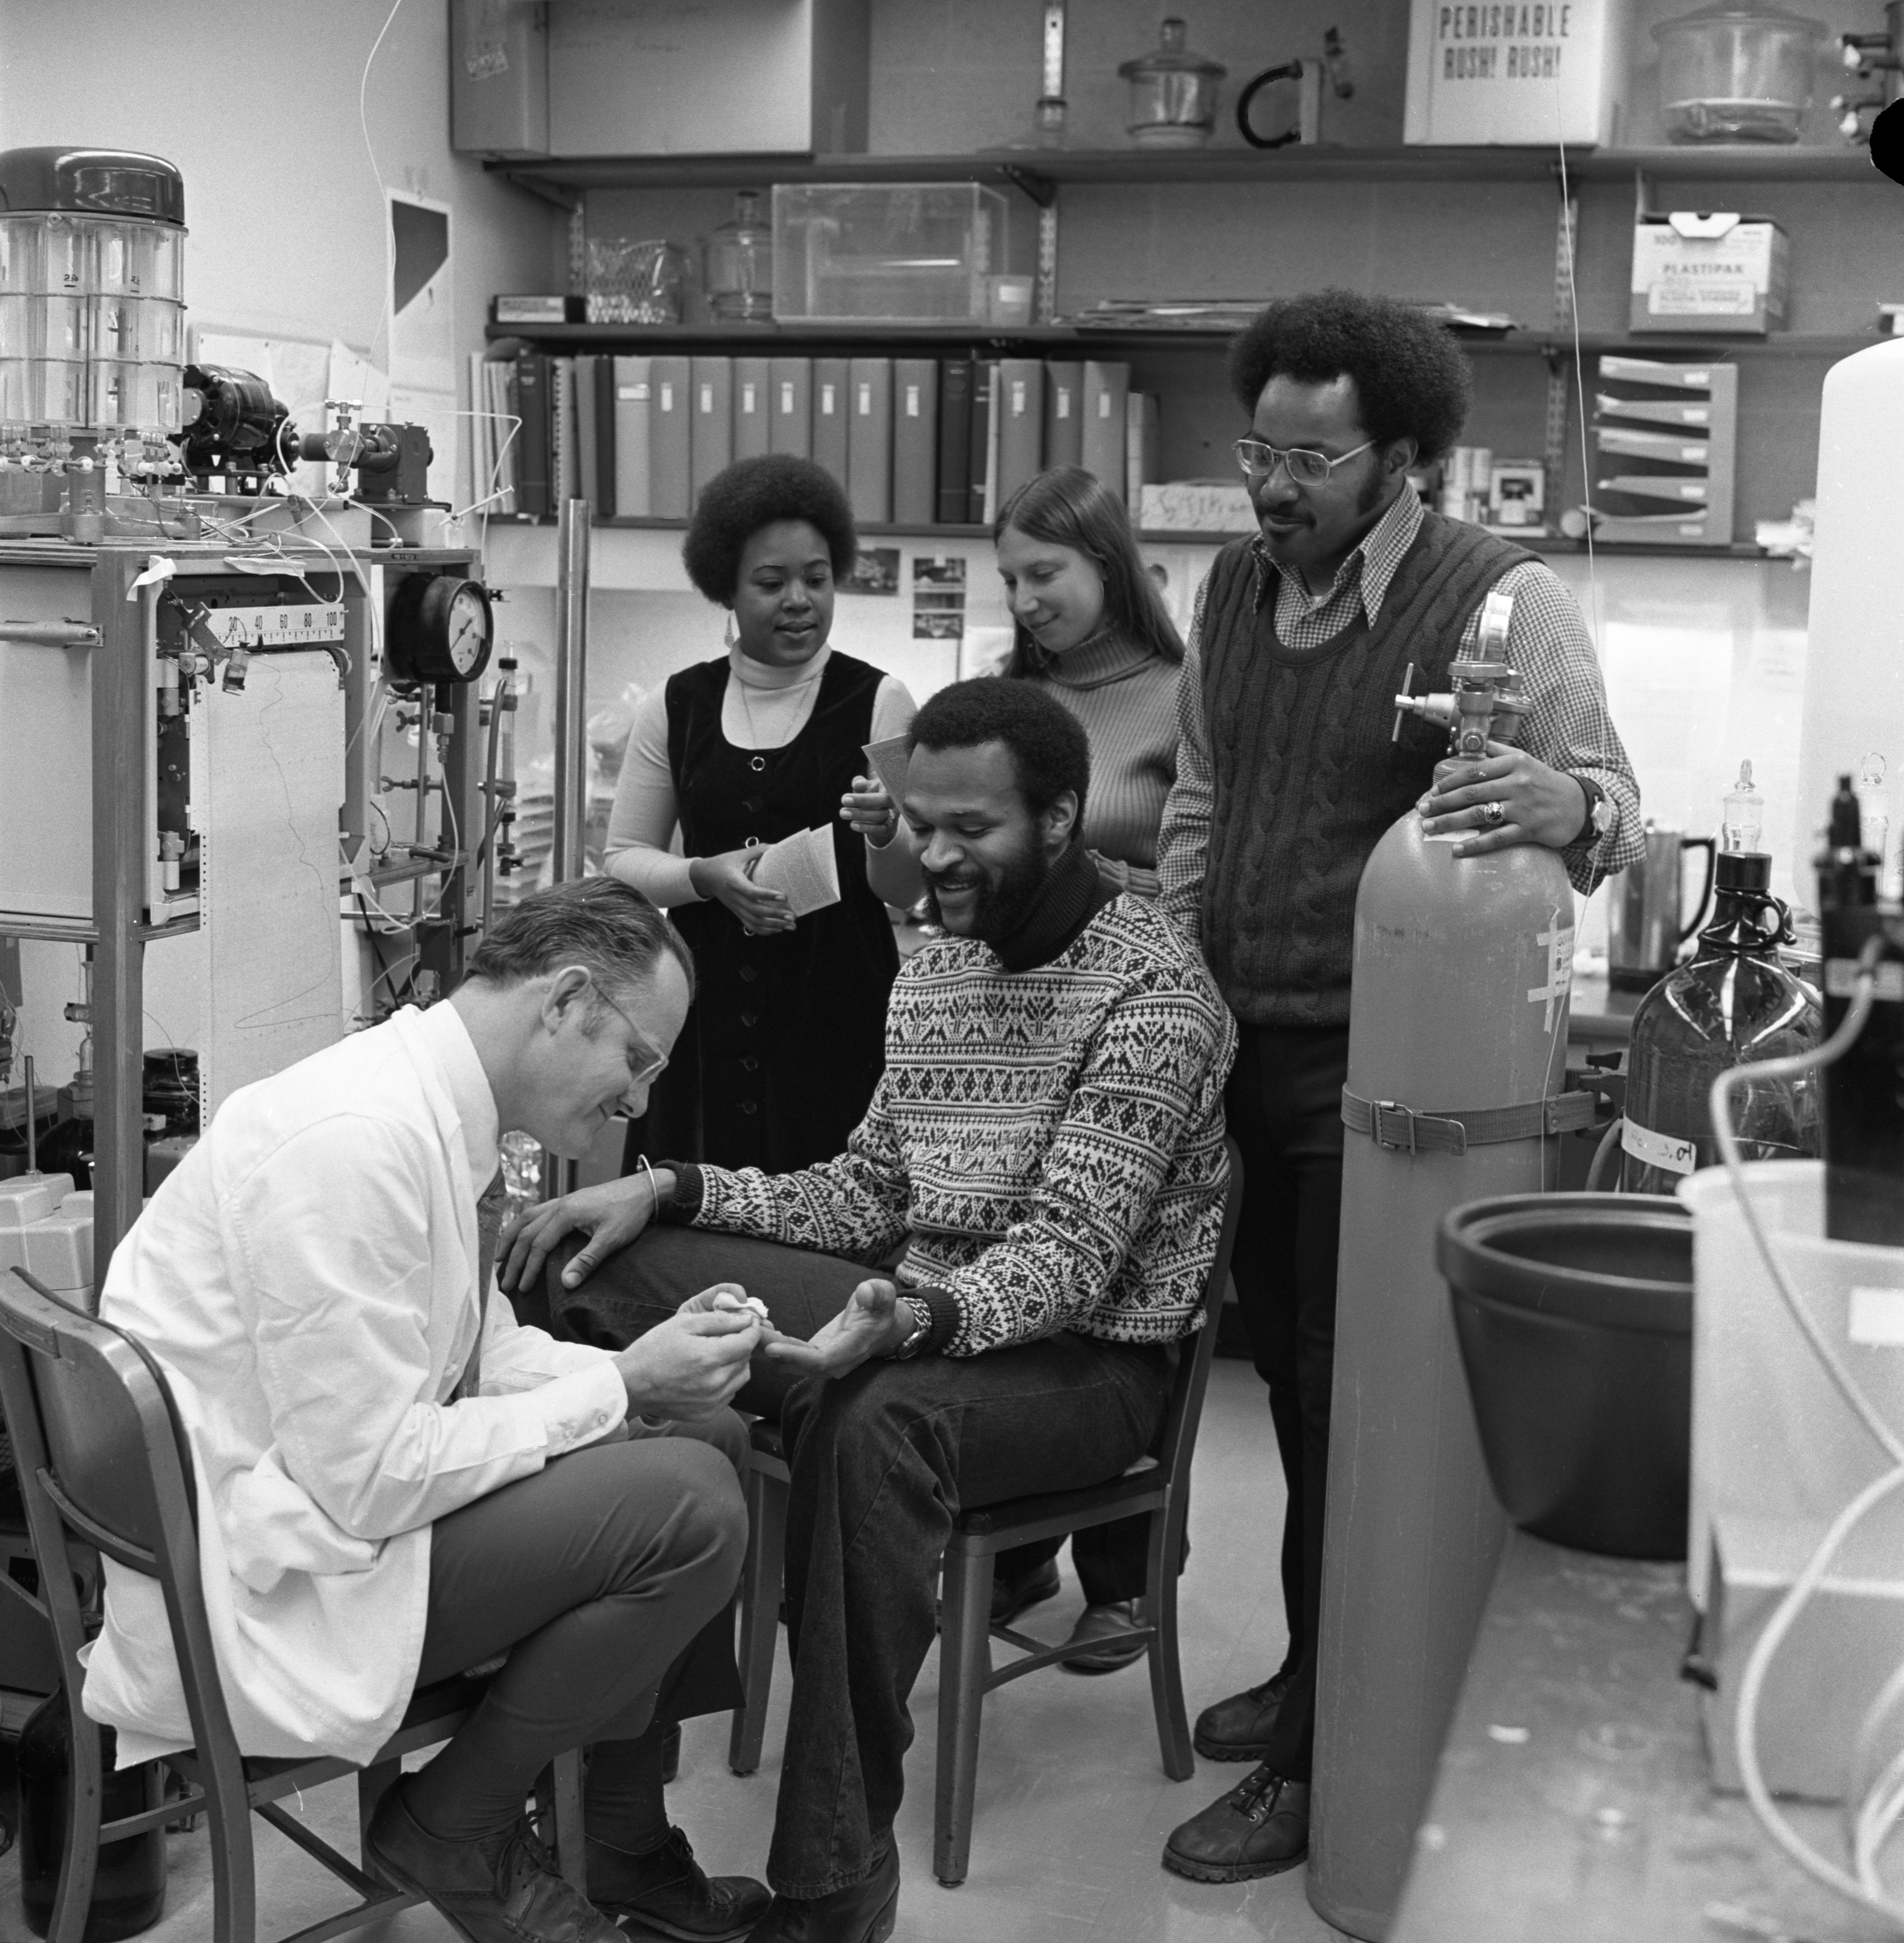 Dr. Donald Rucknagel Tests Dennis Stewart For Sickle Cell Anemia, January 26, 1973 image